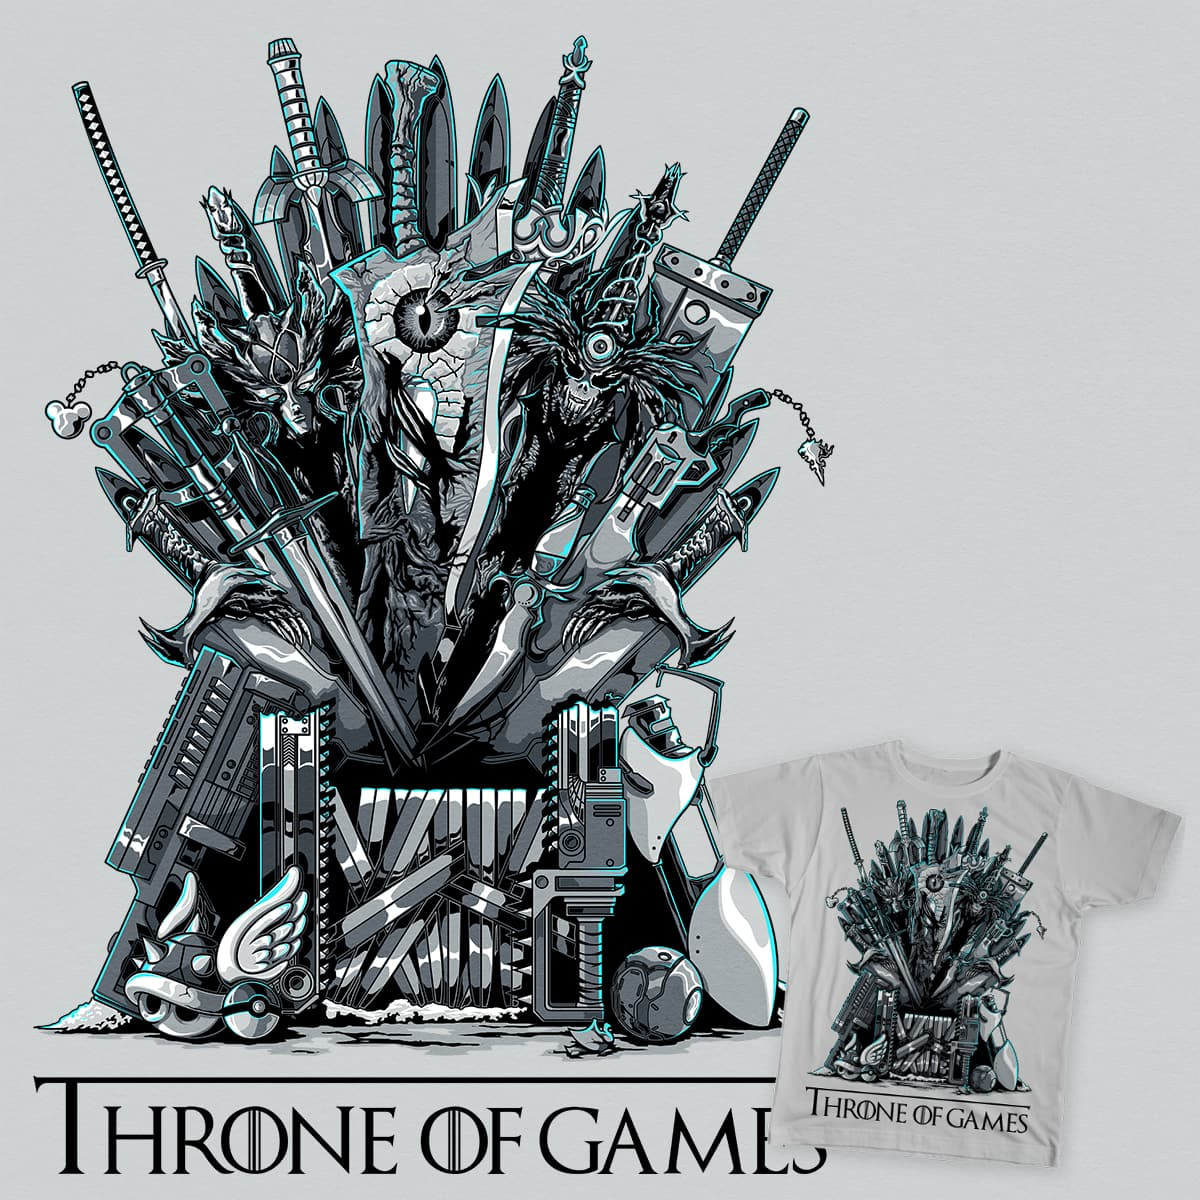 Throne of Games - You Win or You Die by GBIllustrations on Threadless